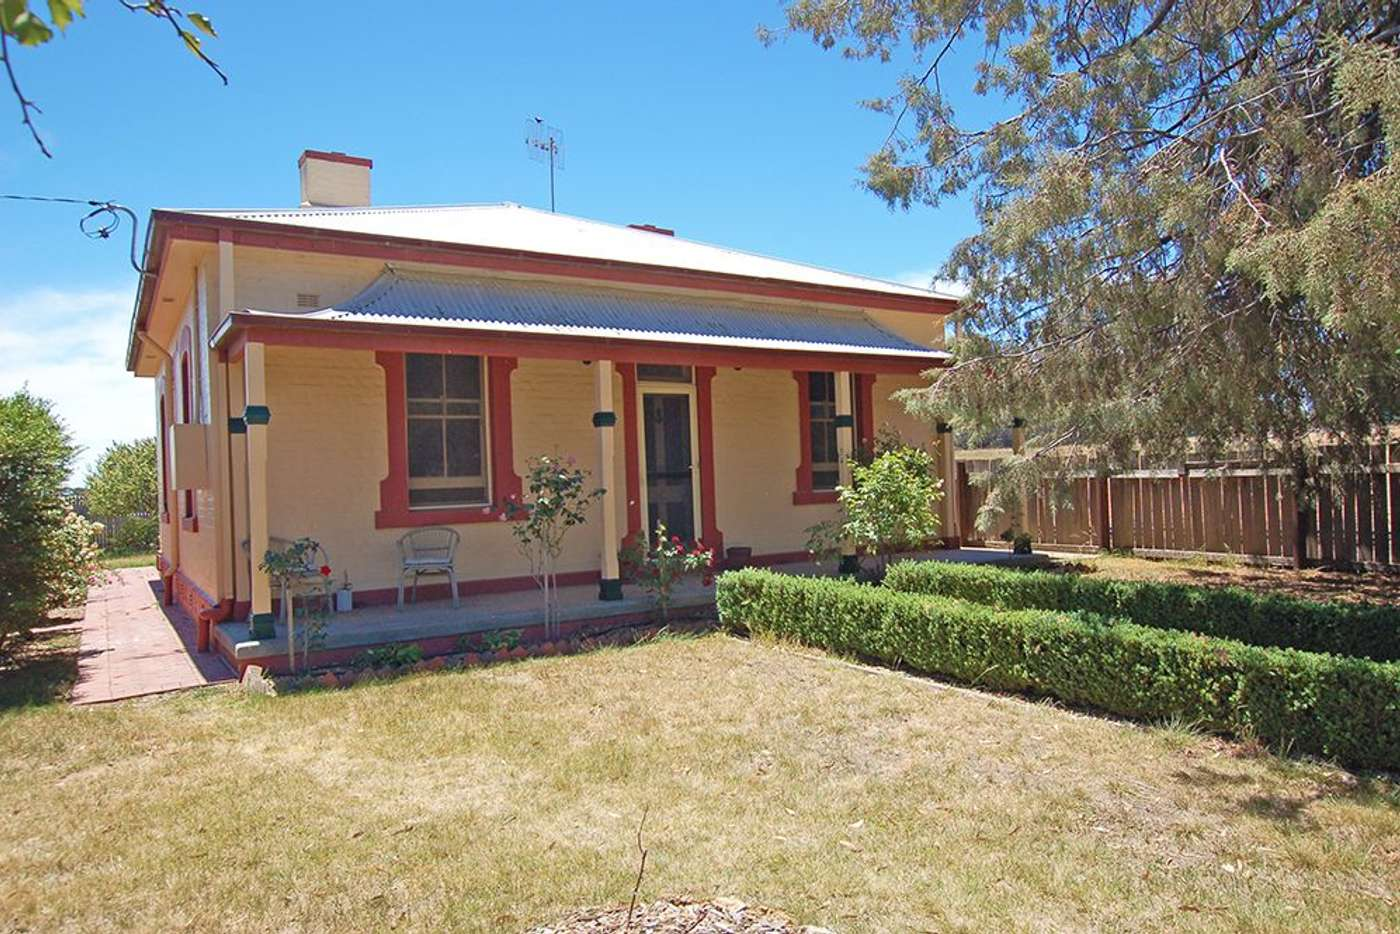 Main view of Homely house listing, 16 Majara Street, Bungendore NSW 2621